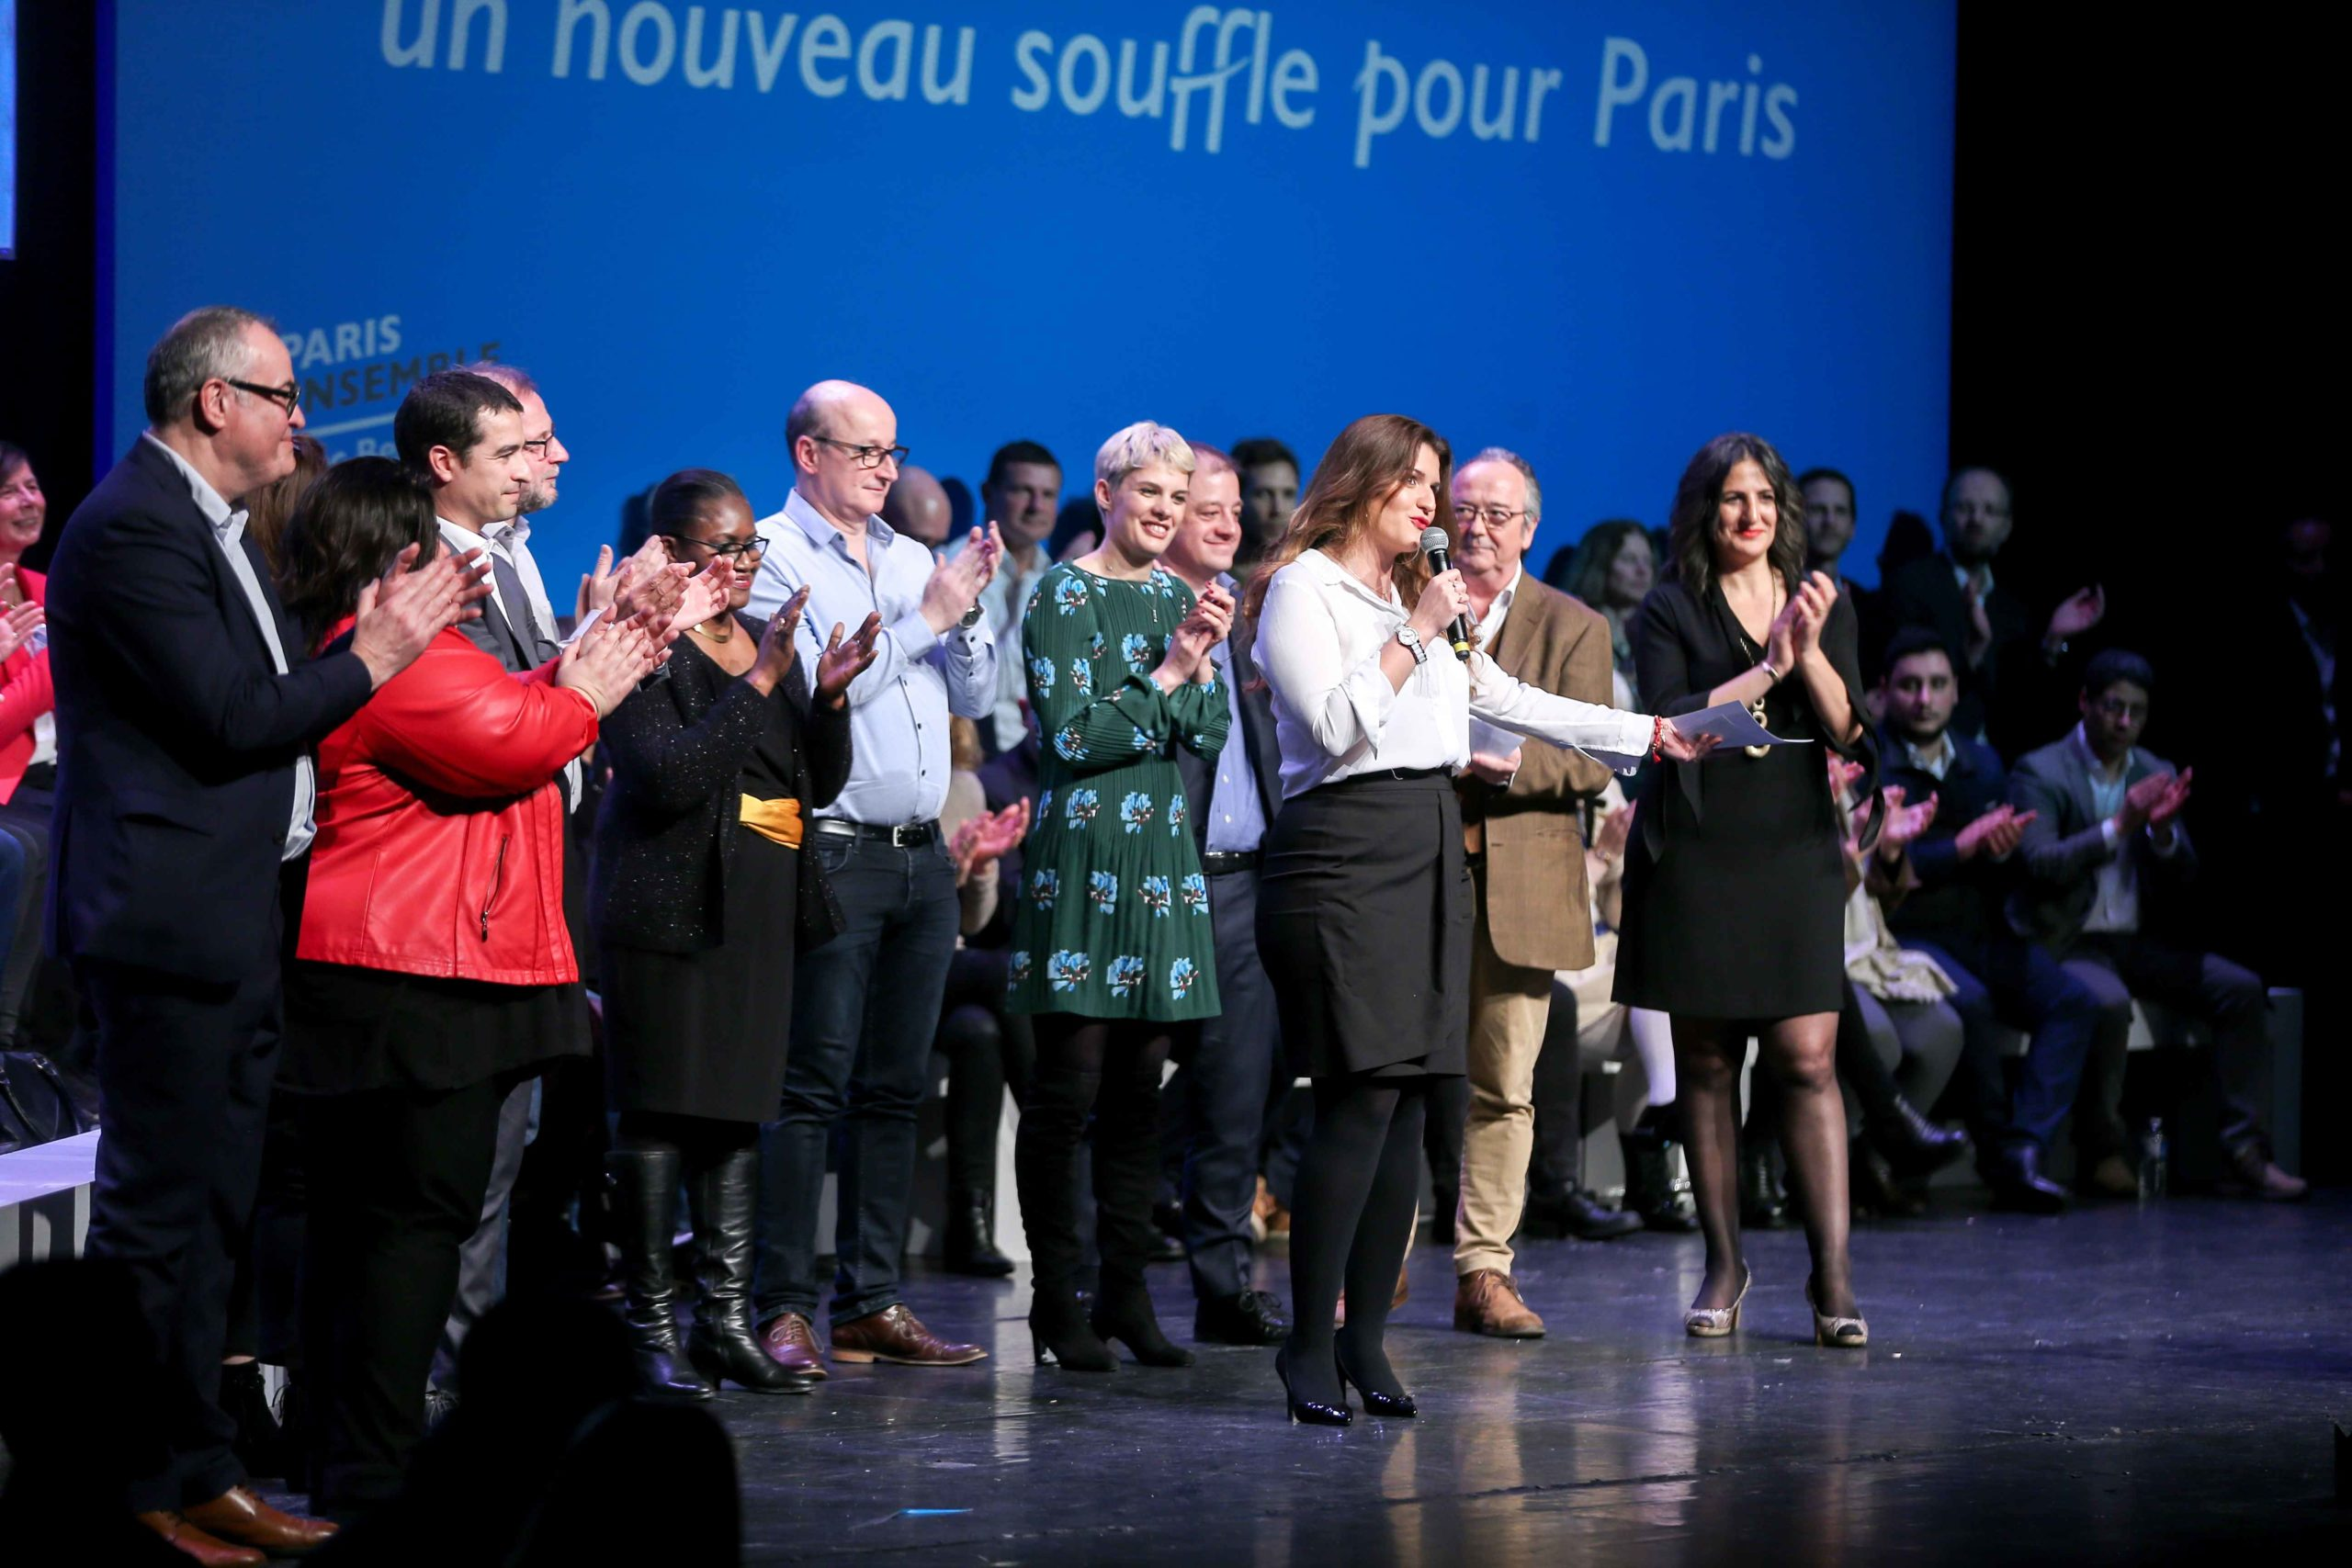 French Junior Minister for Gender Equality Marlene Schiappa (3R), candidate in municipal elections in the 14th arrondissement of Paris, addresses at the Bobino theater for the Benjamin Griveaux meeting, in Paris, on January 27, 2020. Benjamin Griveaux is t